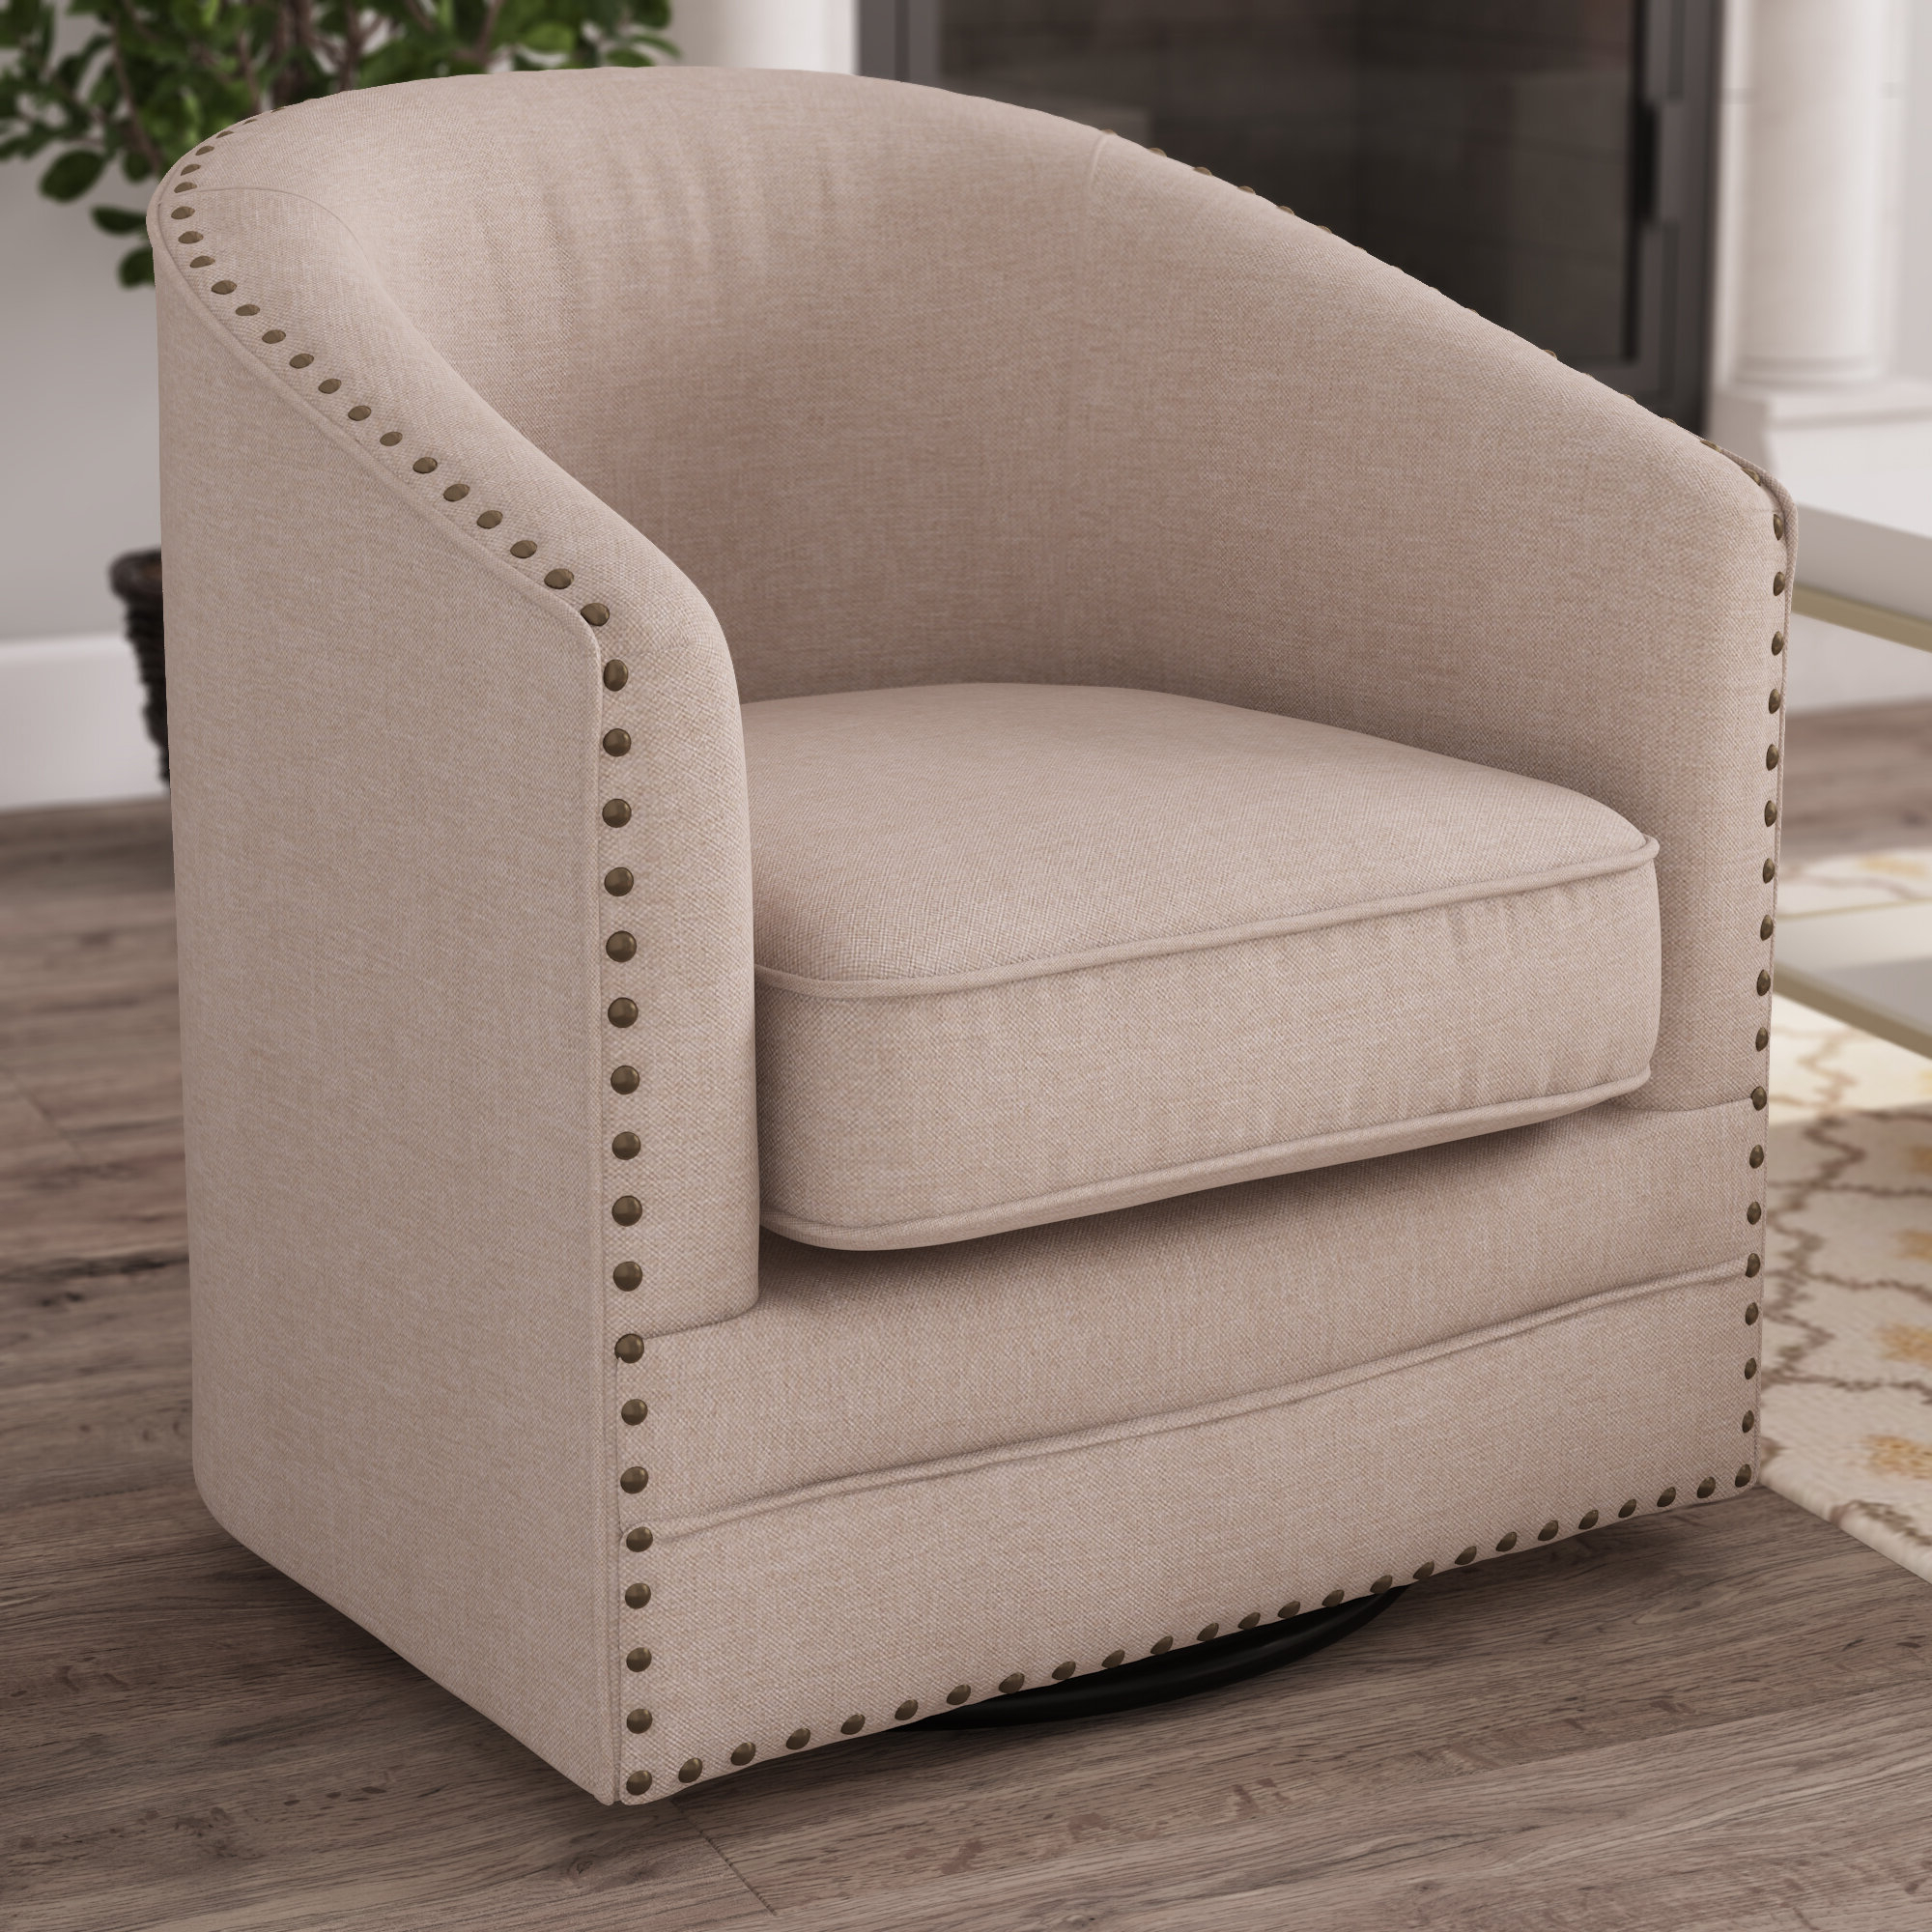 2019 Barnard Polyester Barrel Chairs Intended For Teri Swivel Barrel Chair (View 10 of 20)